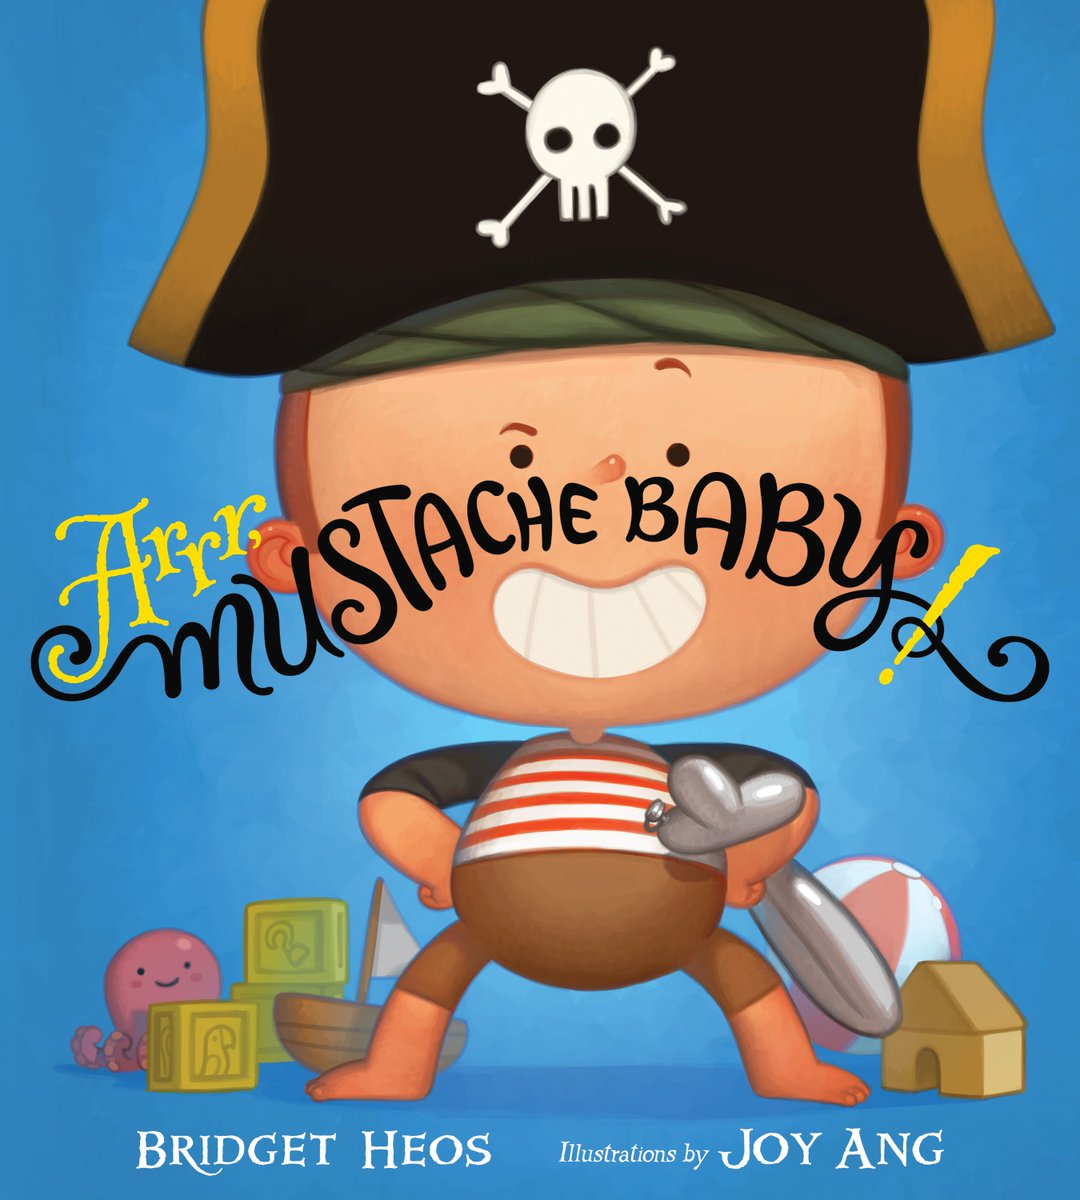 Shiver me timbers! Celebrate #TalkLikeaPirateday with ARR, MUSTACHE BABY!, available for 1.99 on Amazon! @joy_ang @bridgetheos ow.ly/wg2H50wdzan